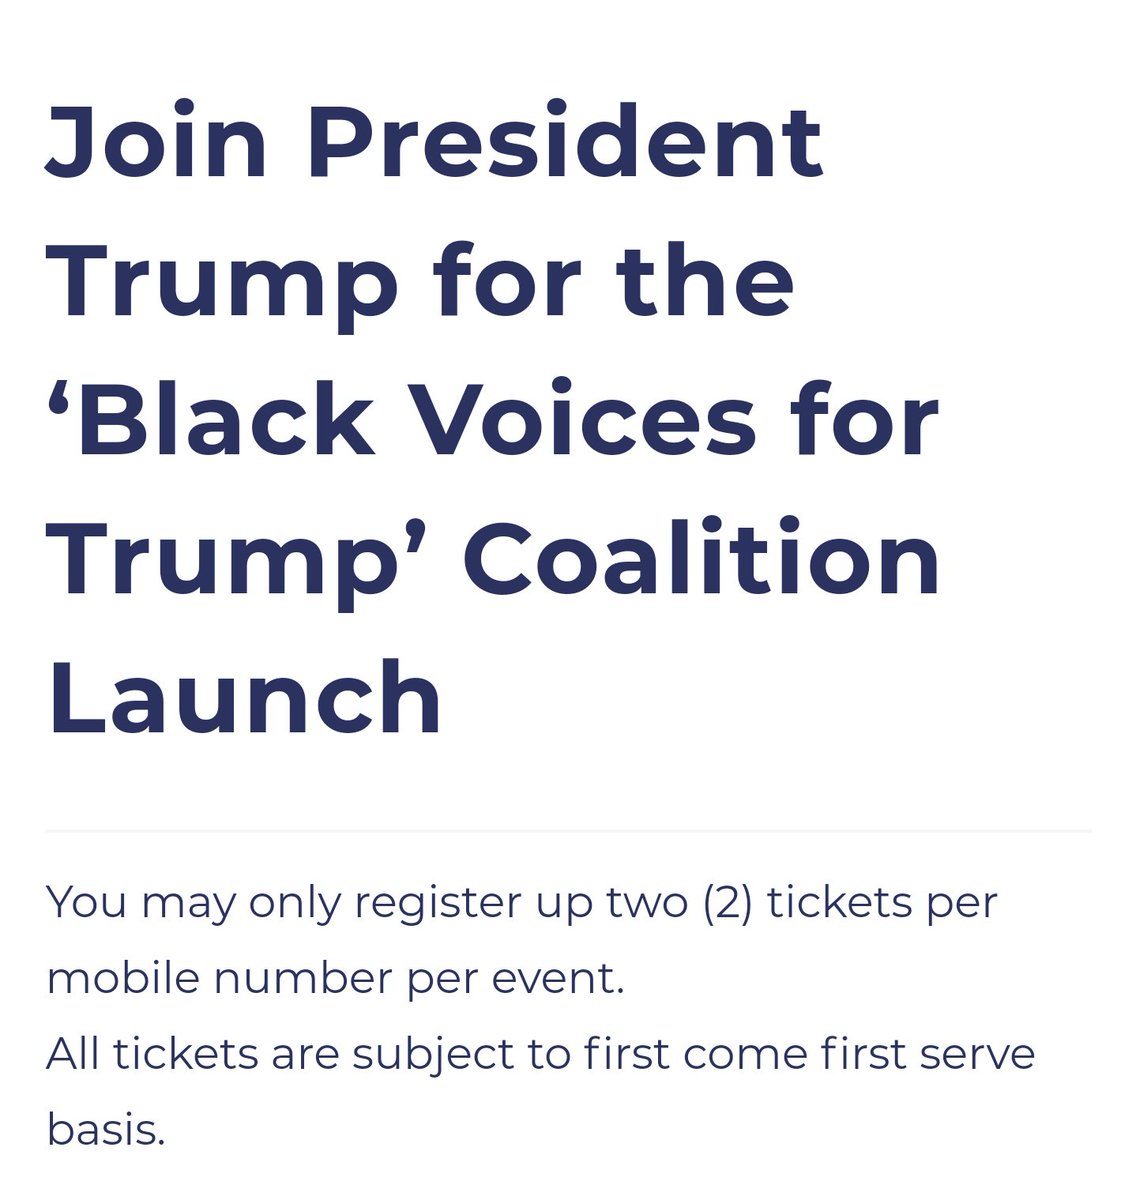 """Hey Atlanta,    Donald Trump is giving away tickets for his """"black voices for Trump"""" event  tomorrow. I strongly recommend that everyone get a ticket for this event, and tell your friends to get tickets too ;). Feel free to share this post! https://www.donaldjtrump.com/events/bvft-nov-2019?utm_medium=email&utm_source=ET_686&utm_campaign=20191107_17622_rally-invite-bvft_teamtrumppence_djt&utm_content=djt_rally_text_rsvp_top_none_all&fbclid=IwAR1i2mfYuTzFs5gptCJcOyYNfHf1SKRwAchiHVSq6RkGwnmVaYQrXcMxT2s…"""